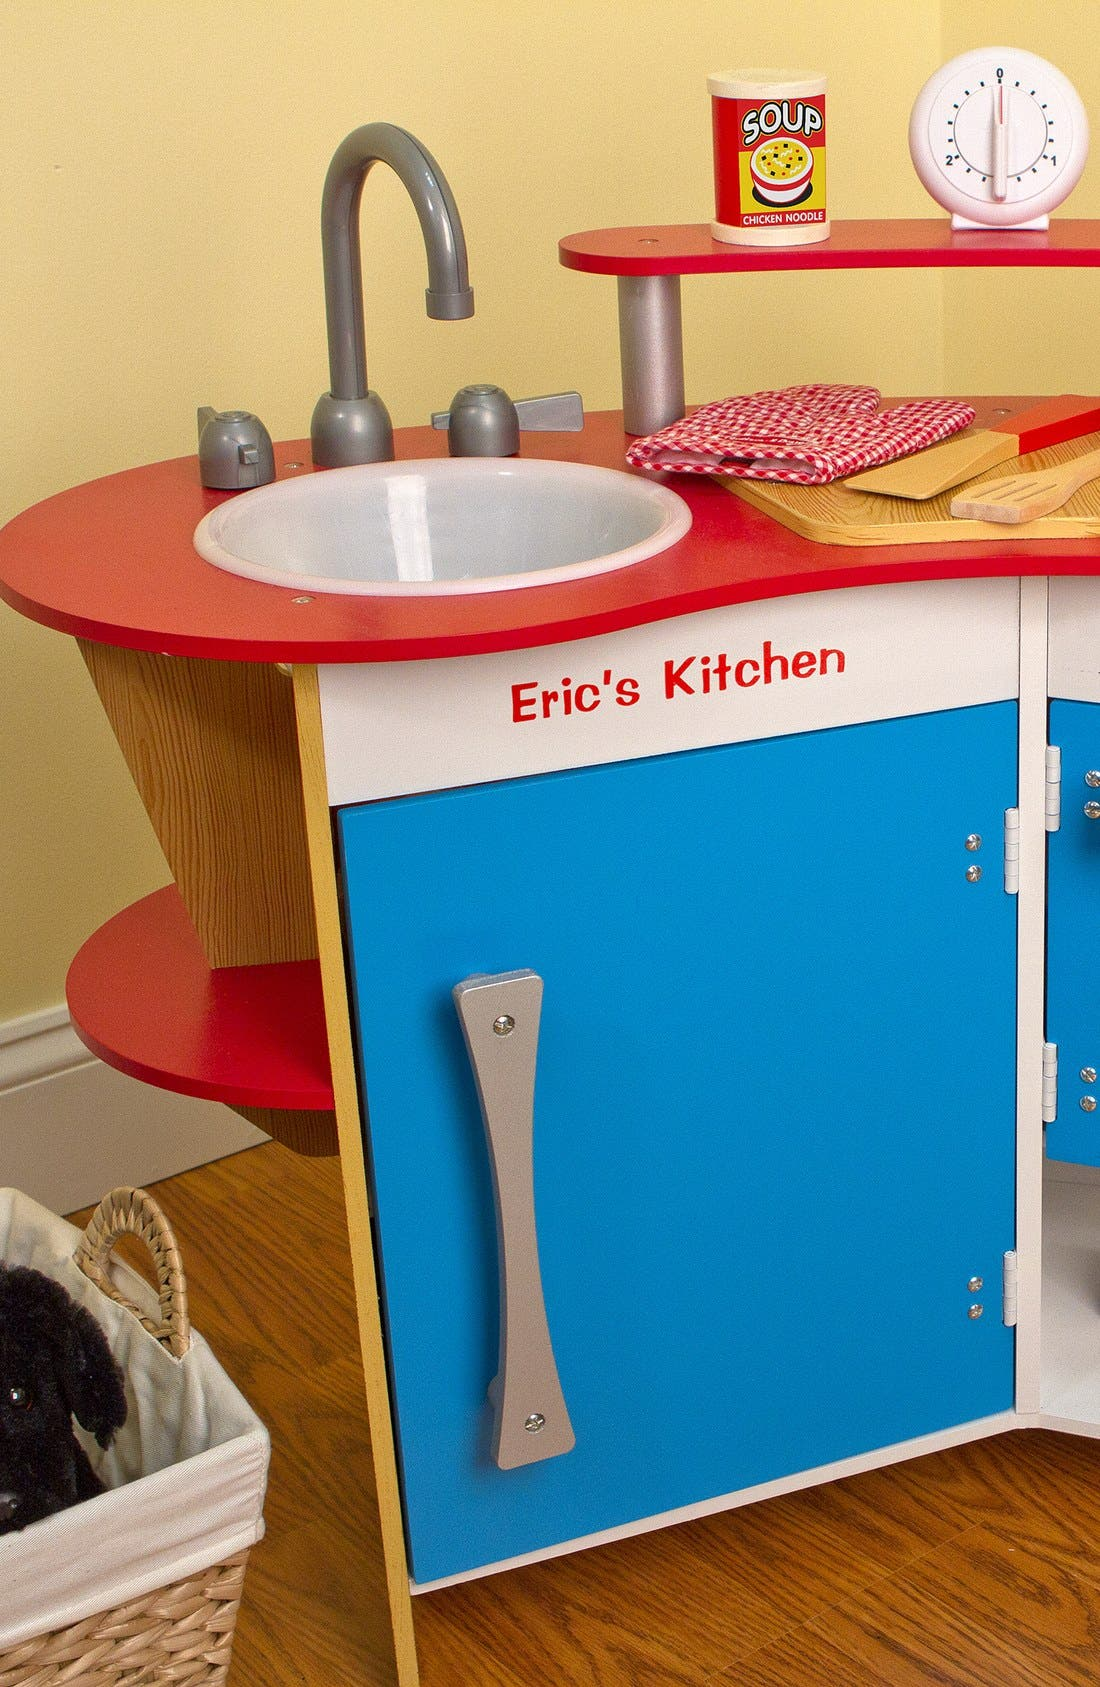 'Cook's Corner' Personalized Kitchen,                         Main,                         color, Red